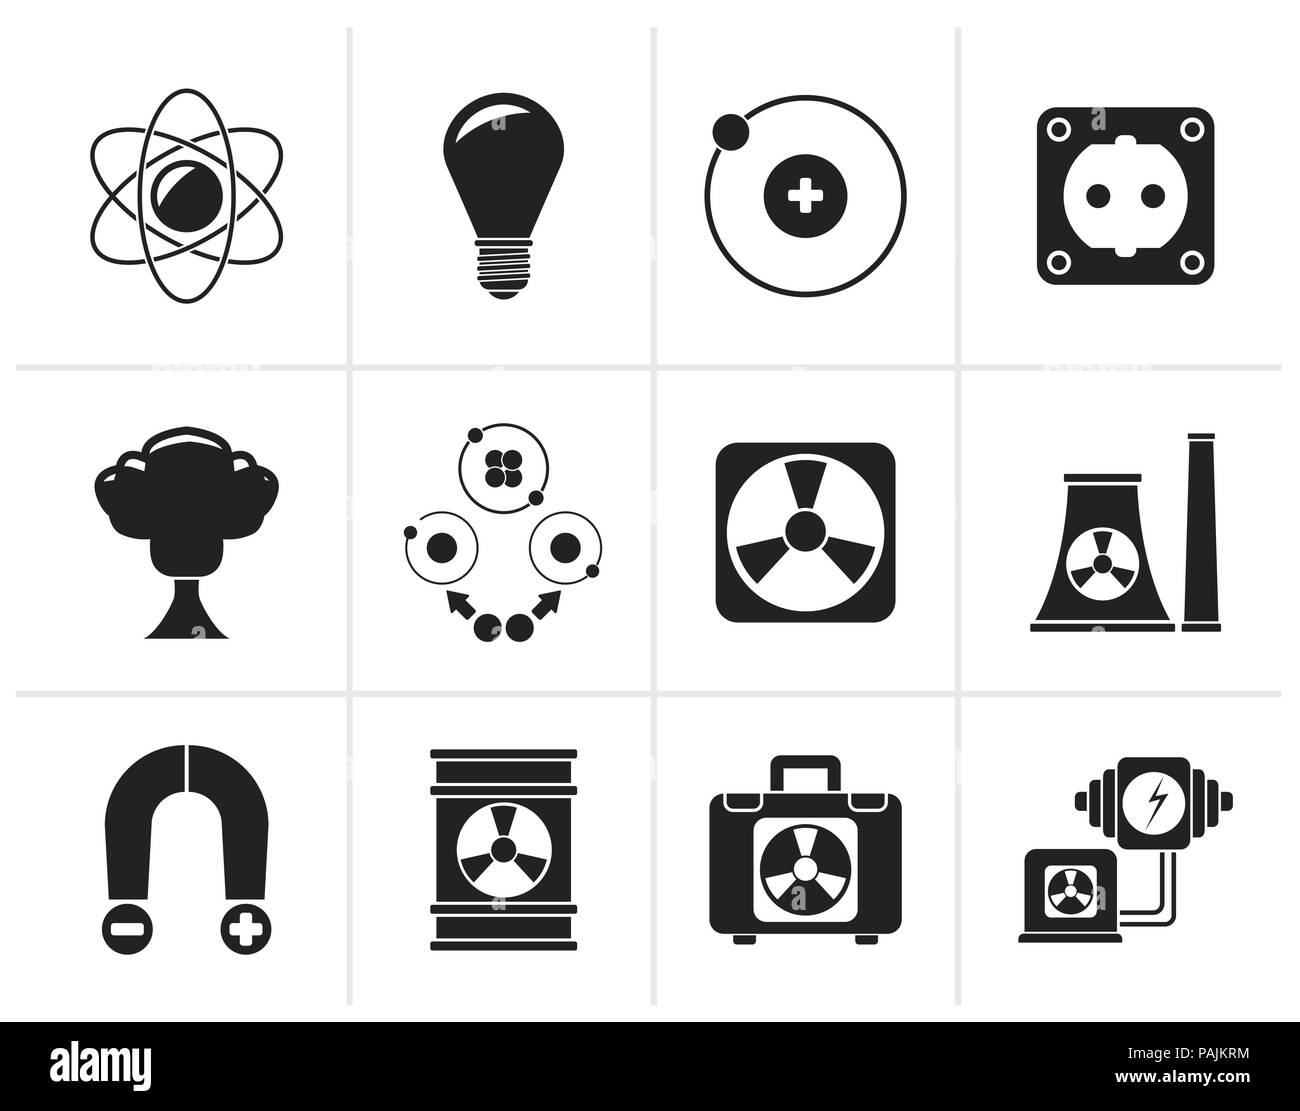 Black Atomic and Nuclear Energy Icons - vector icon set Stock Vector